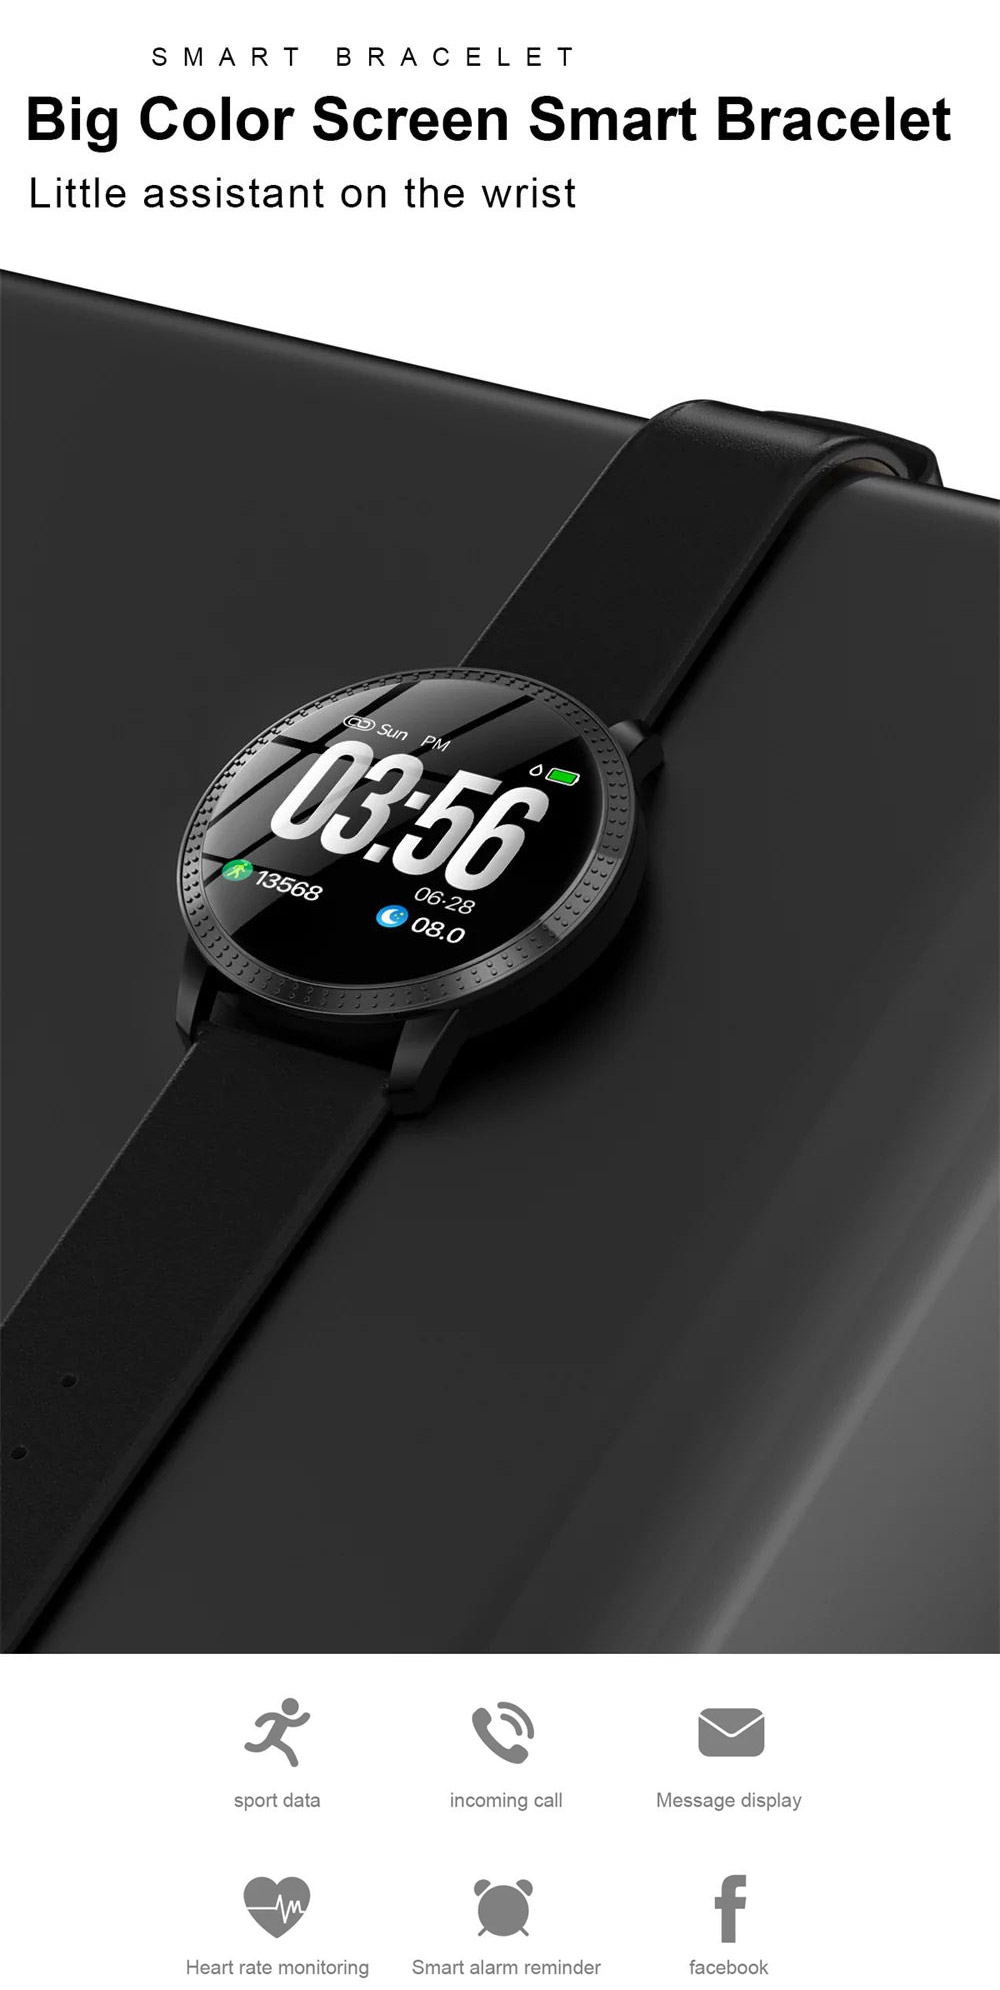 cf18 smartwatch for sale